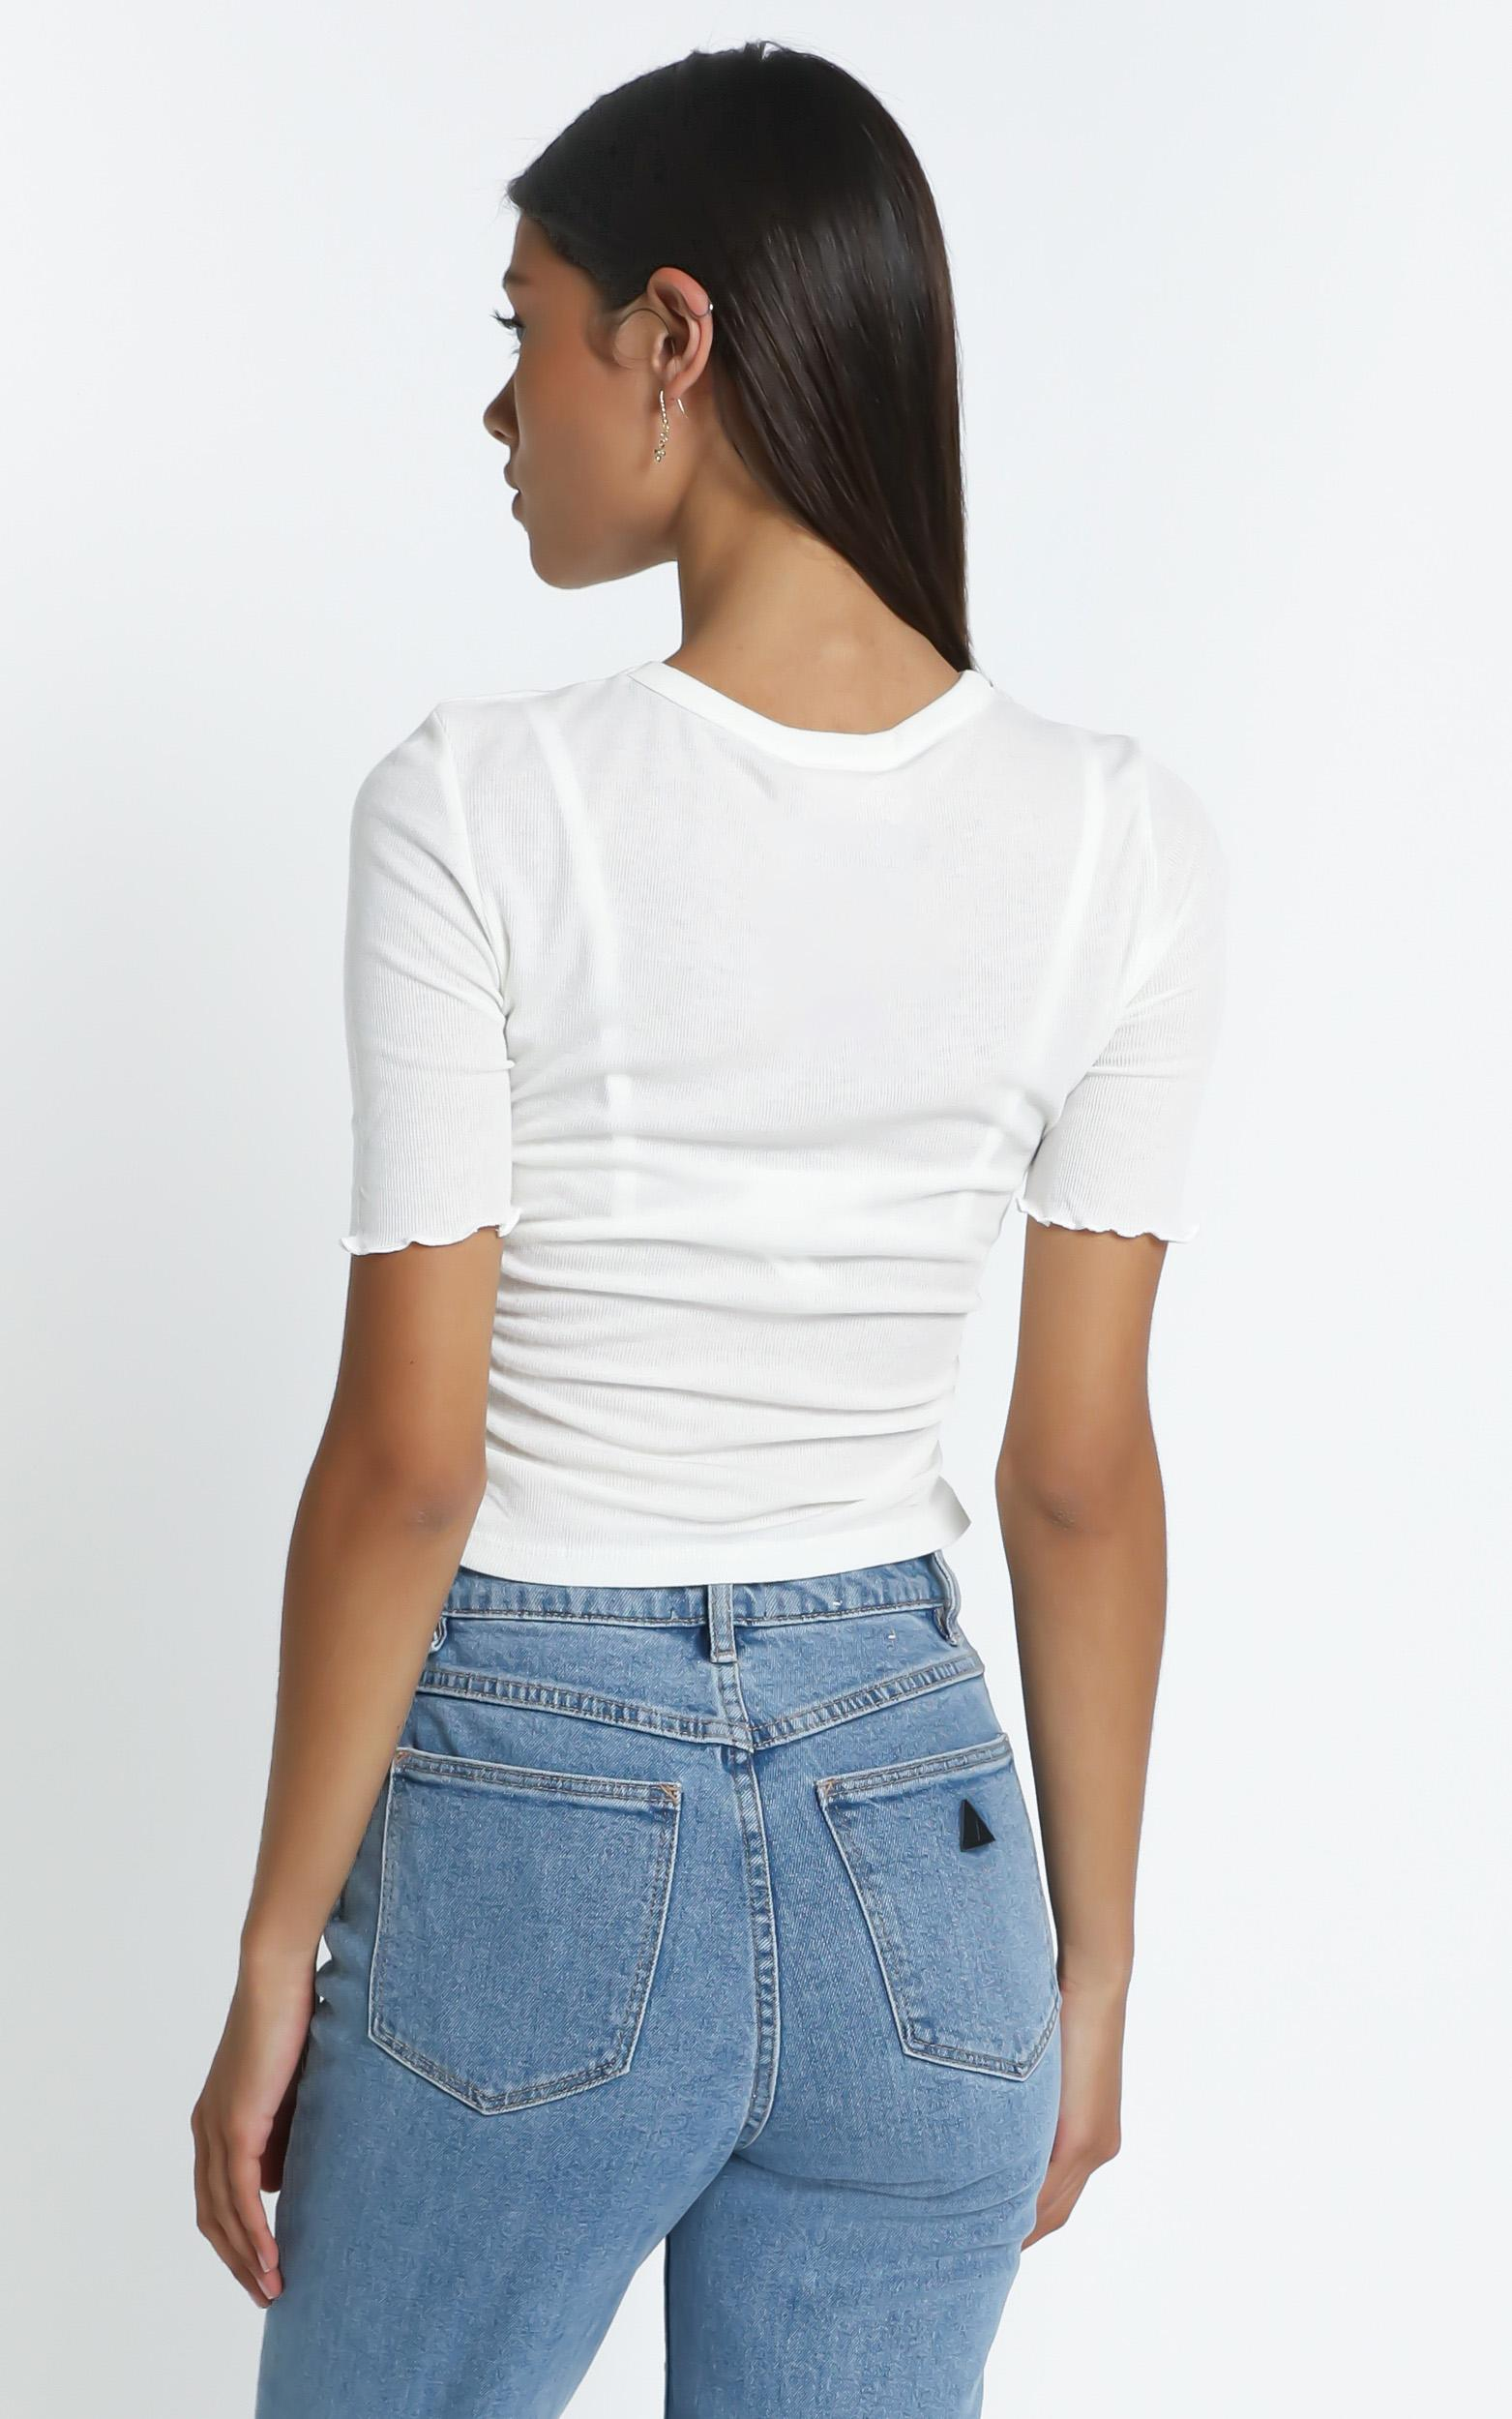 Therese T Shirt in White - 6 (XS), White, hi-res image number null